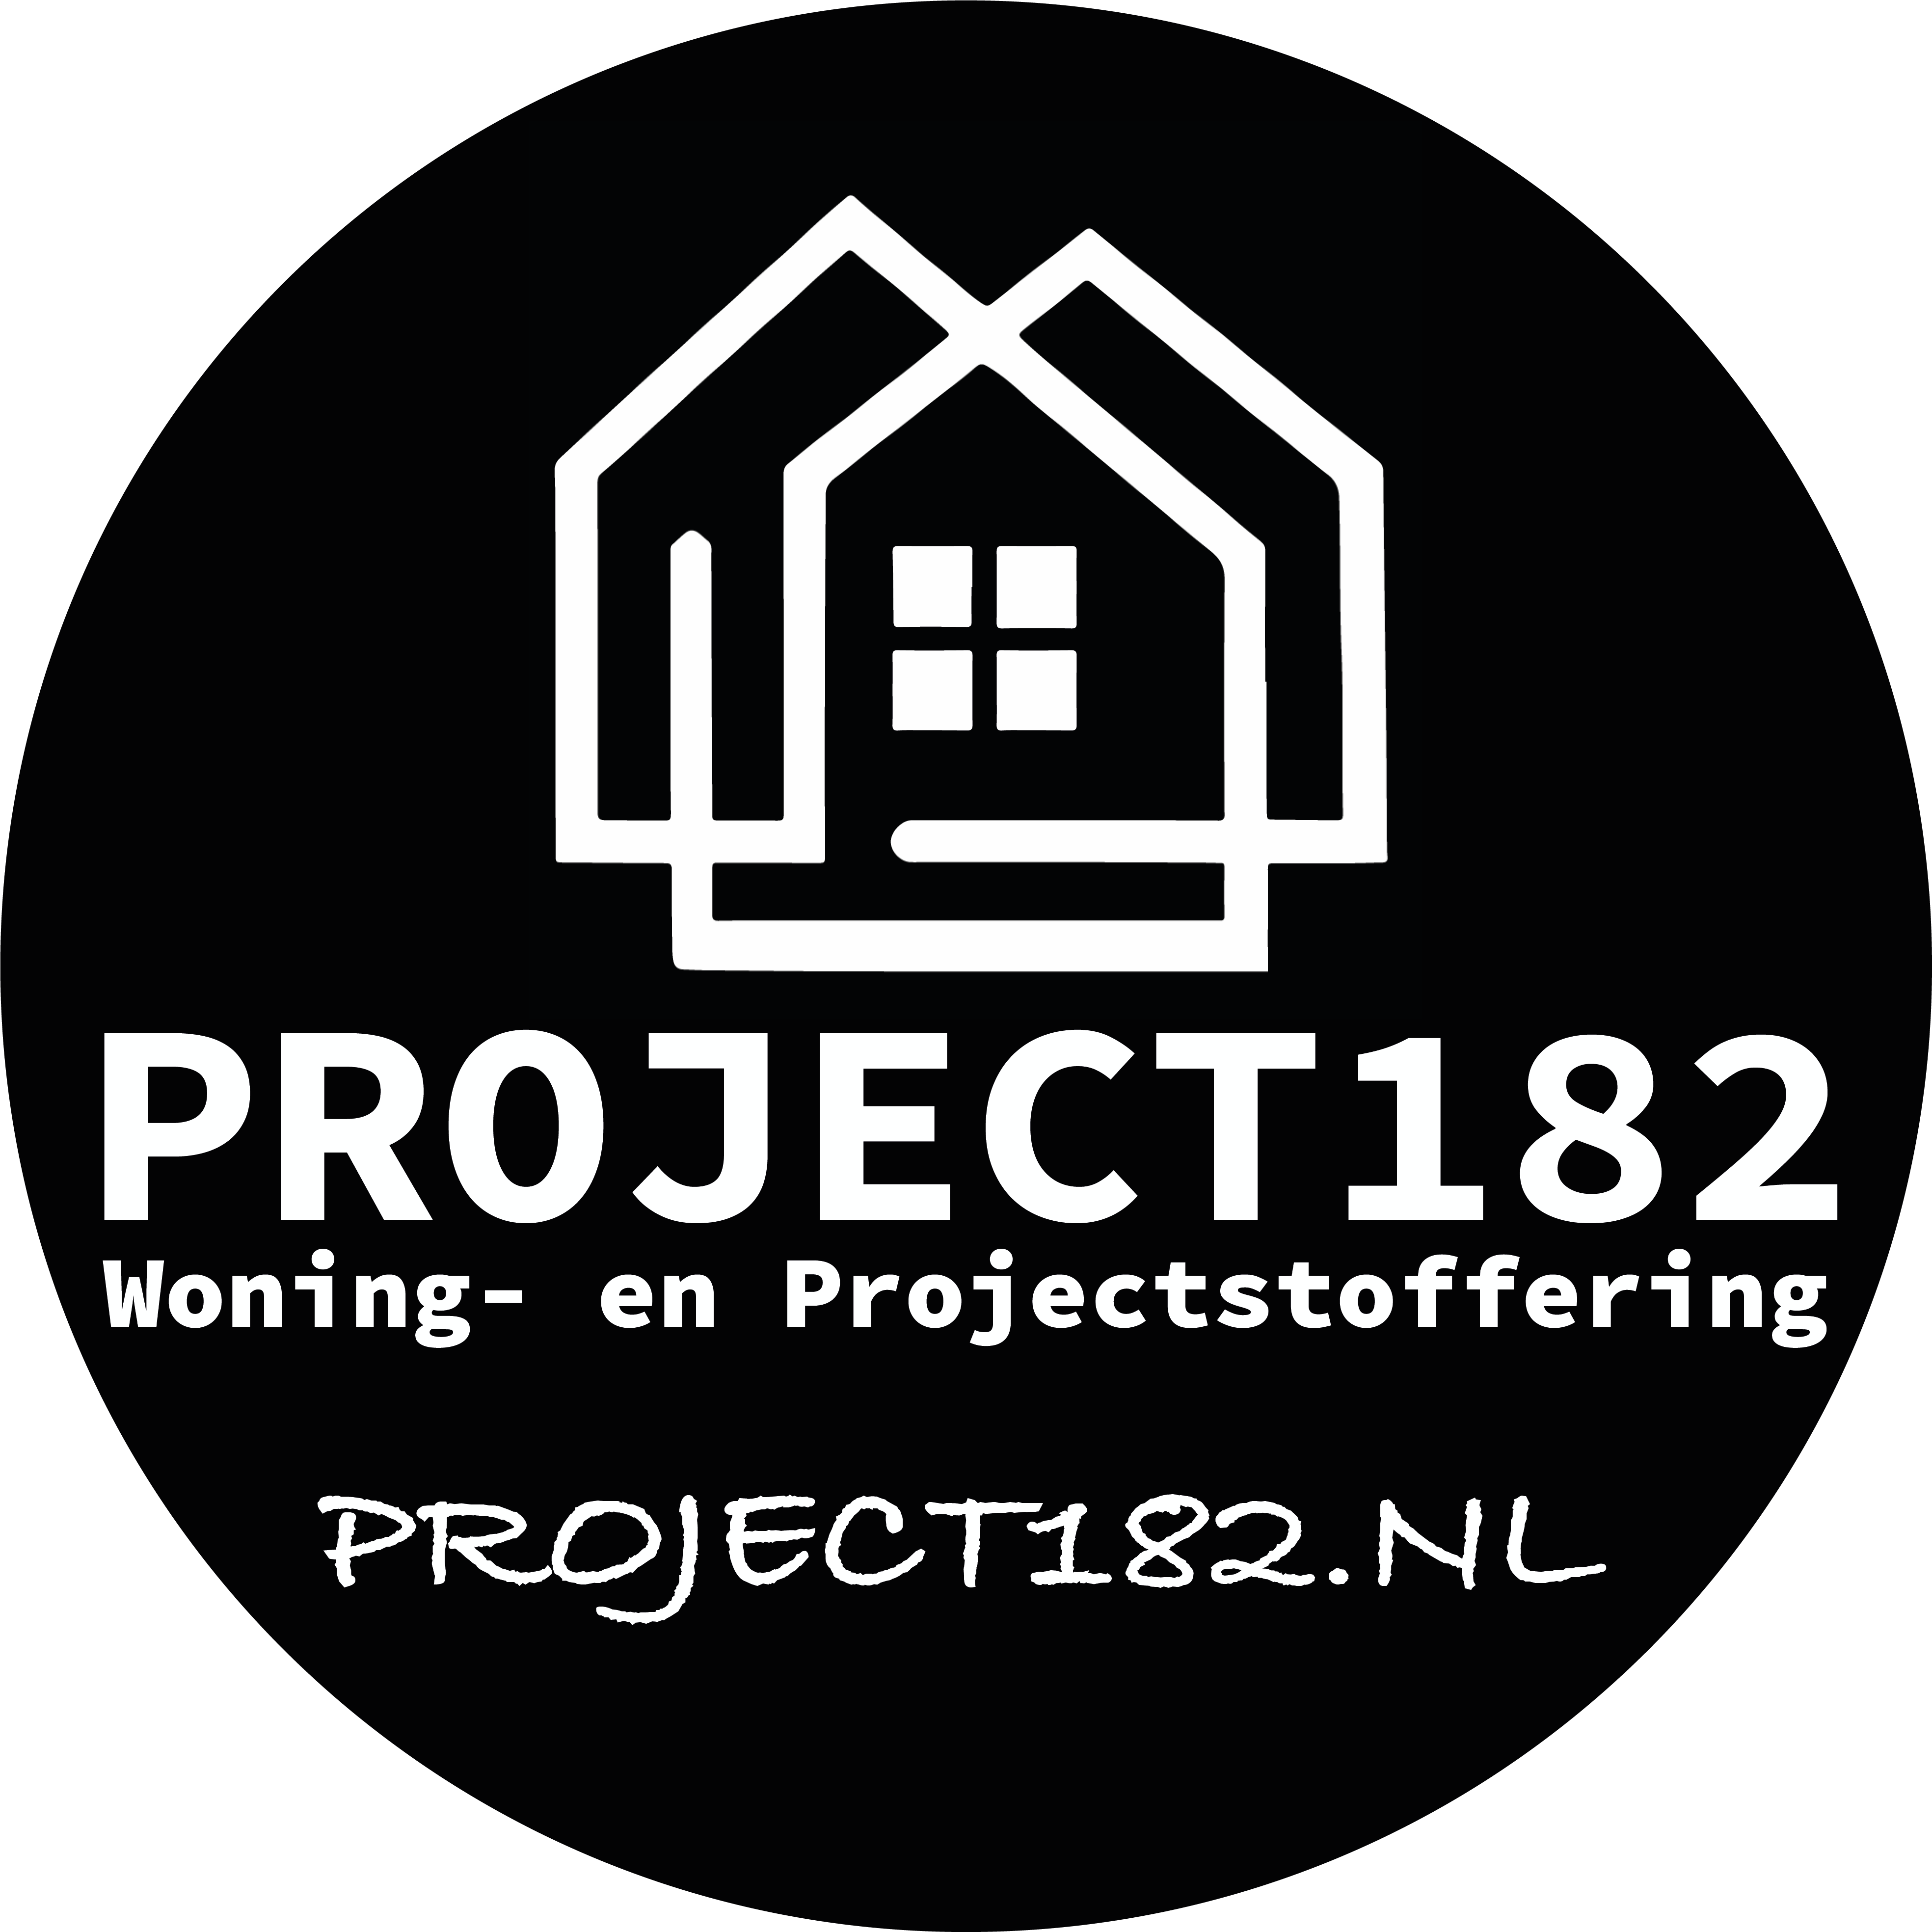 PROJECT182